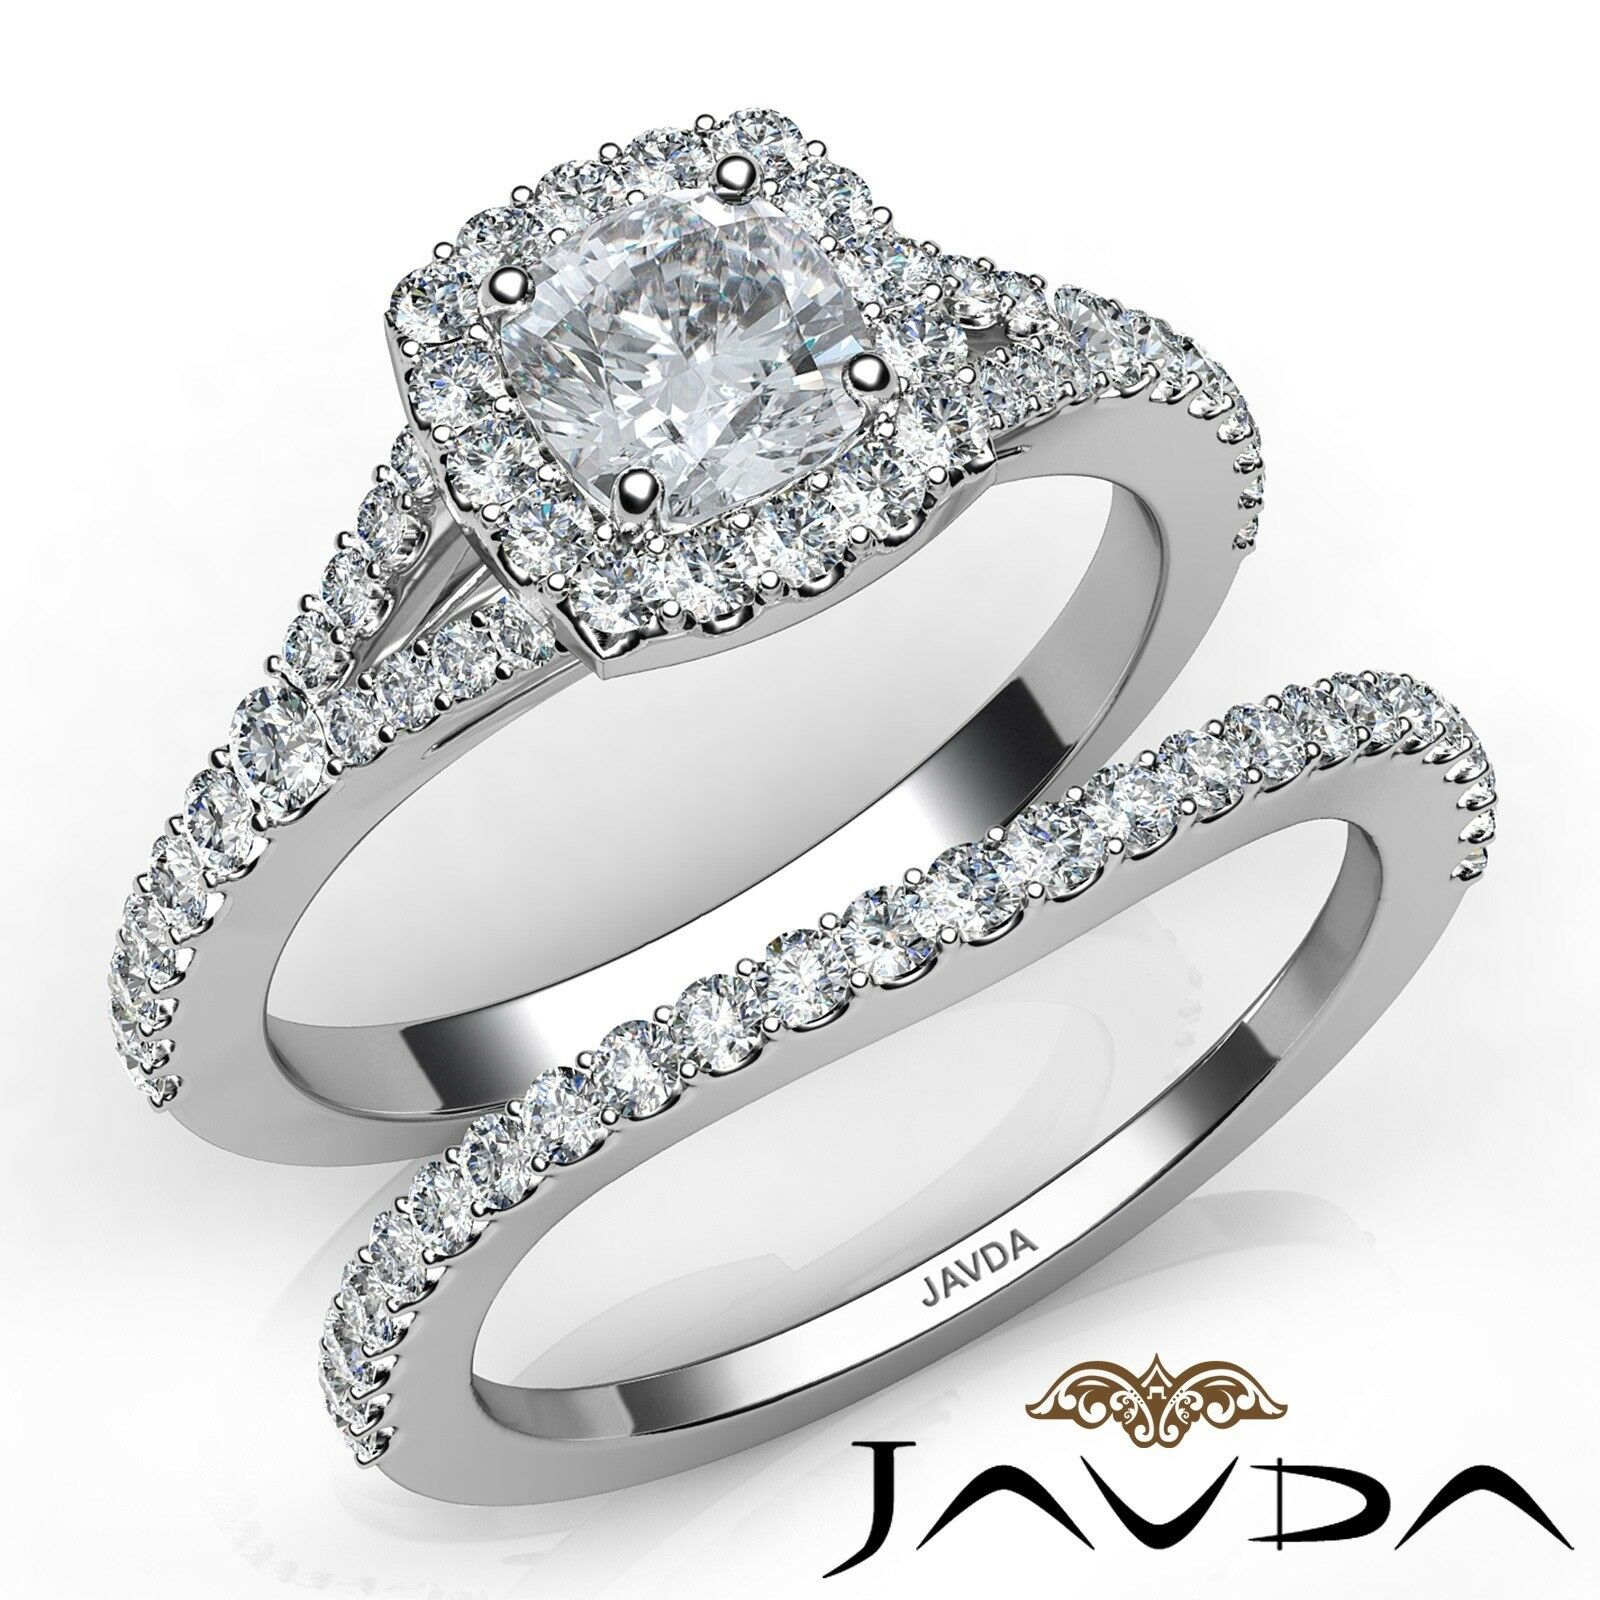 1.31ctw U Cut Pave Halo Bridal Cushion Diamond Engagement Ring GIA G-VS2 W Gold